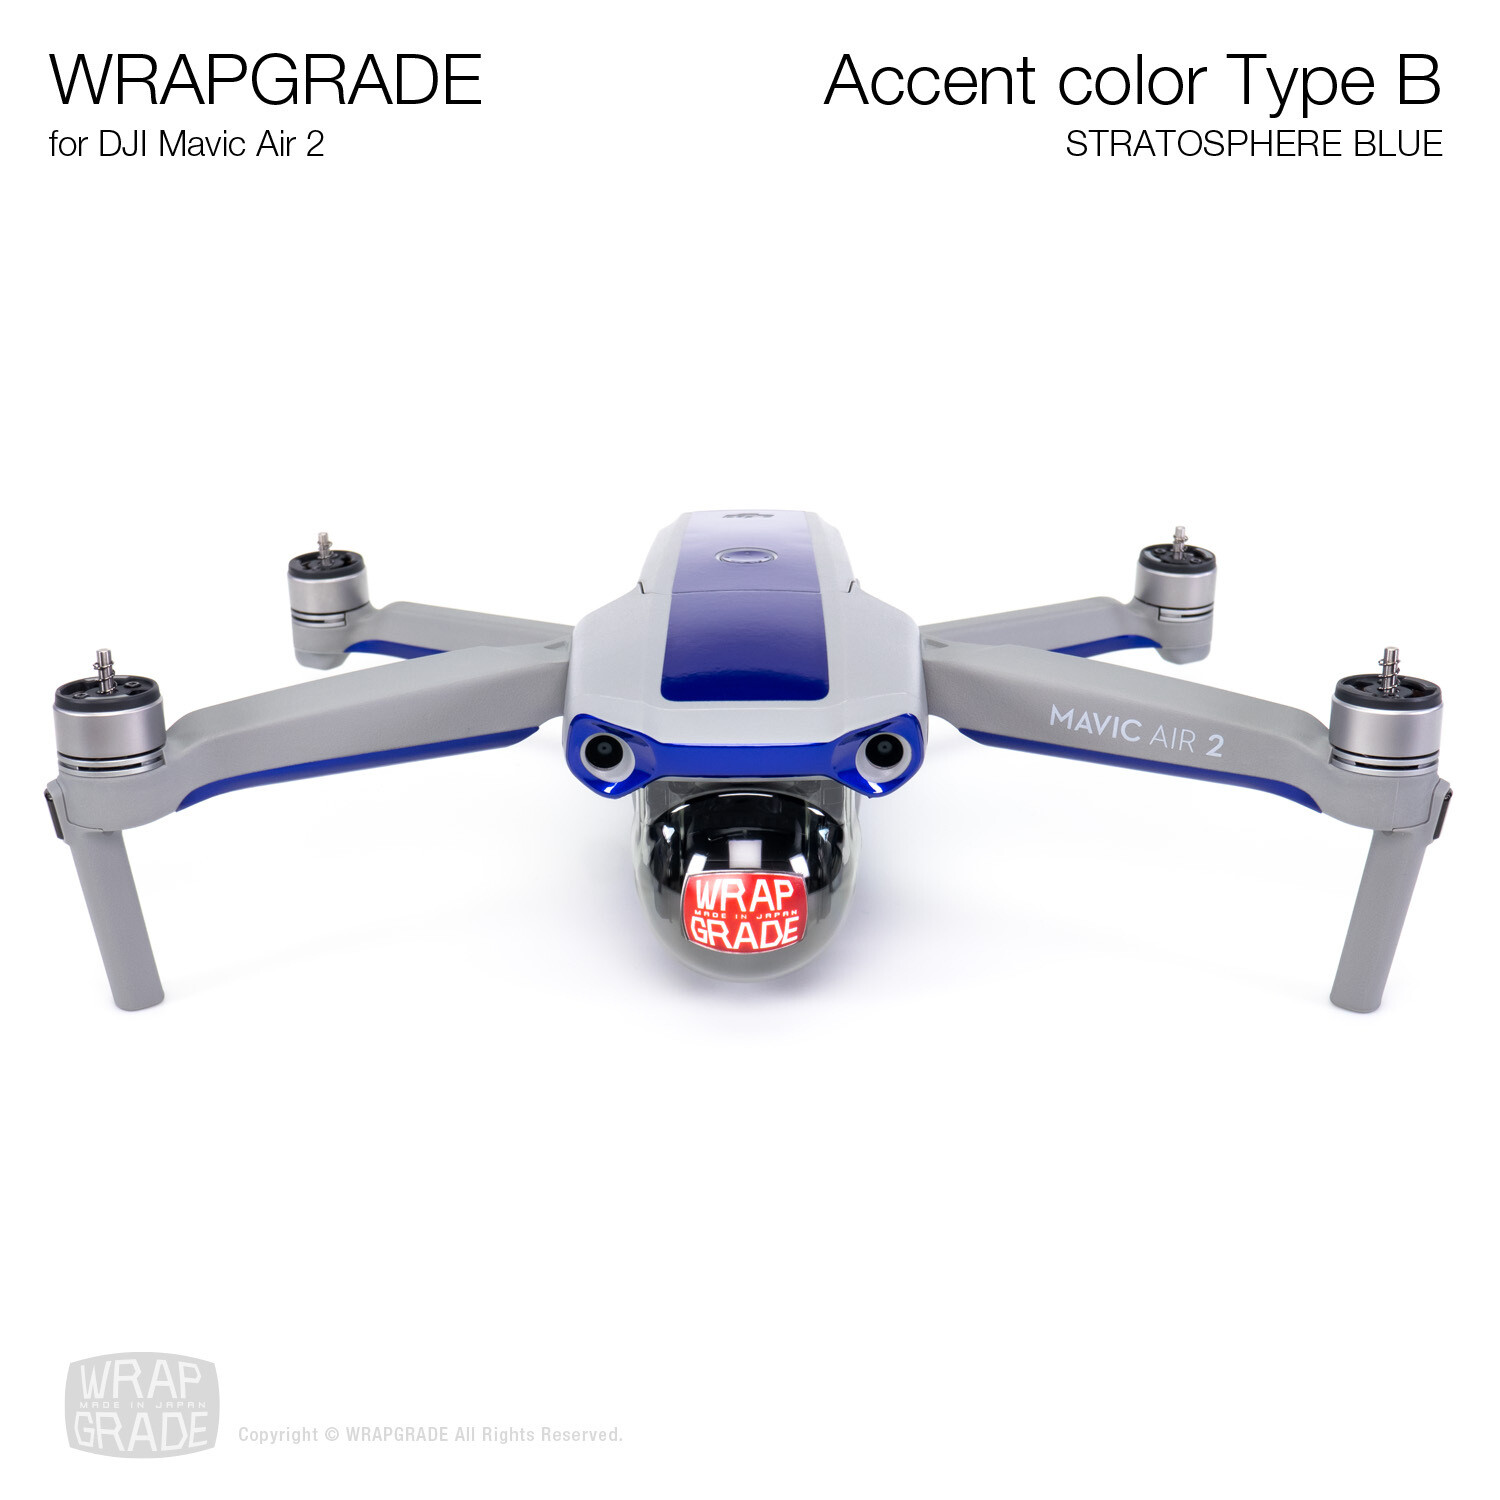 Wrapgrade for DJI Mavic Air 2 | Accent Color B (STRATOSPHERE BLUE)